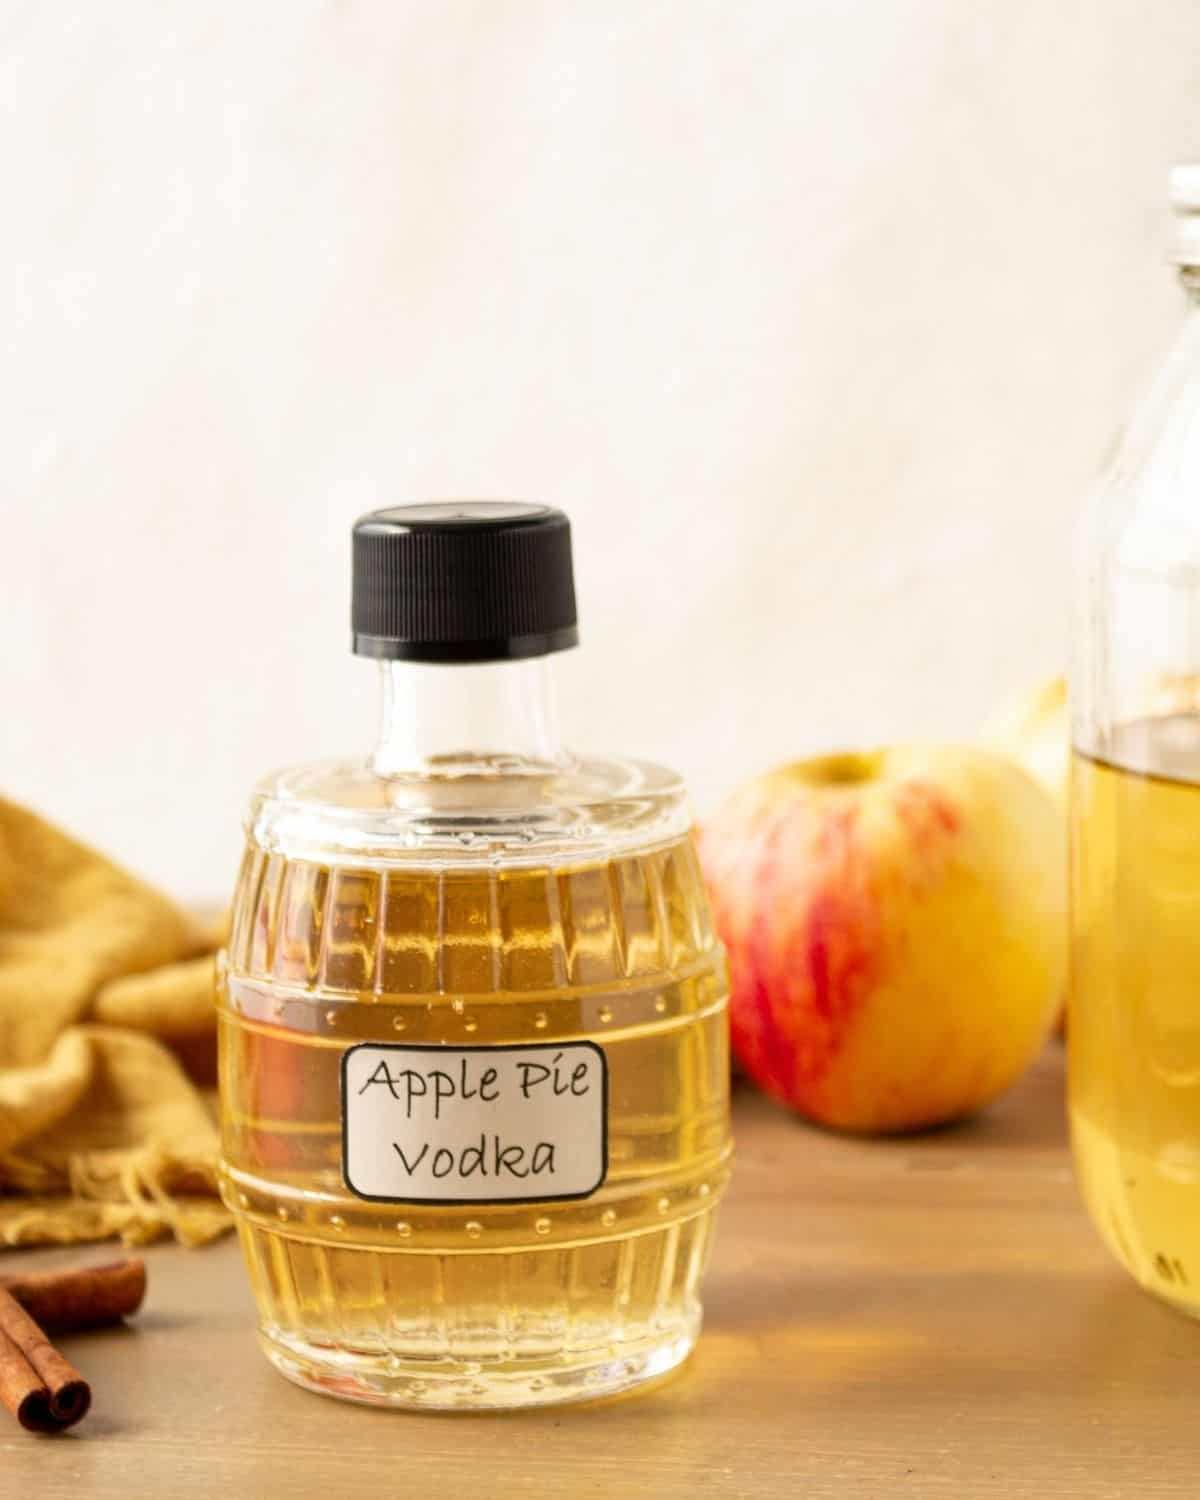 A homemade bottle of apple pie vodka with fresh apples and cinnamon on the side.